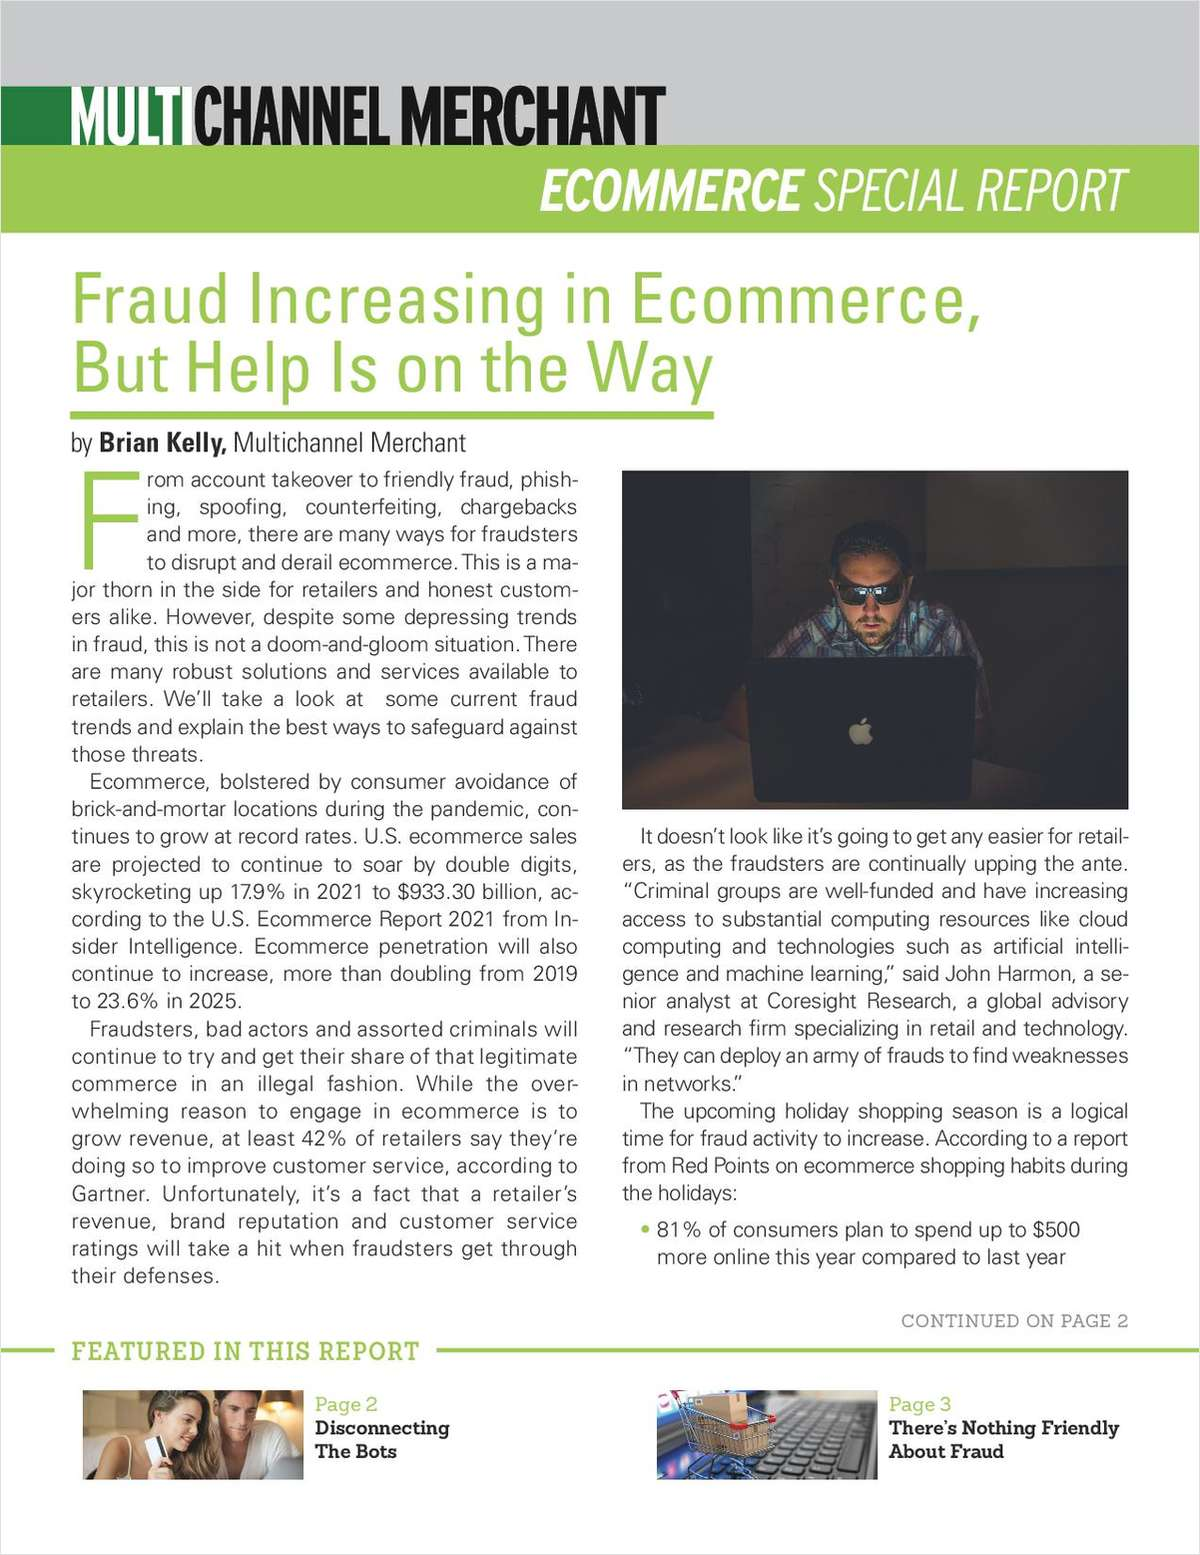 Ecommerce Fraud Increasing, But Help Is On the Way